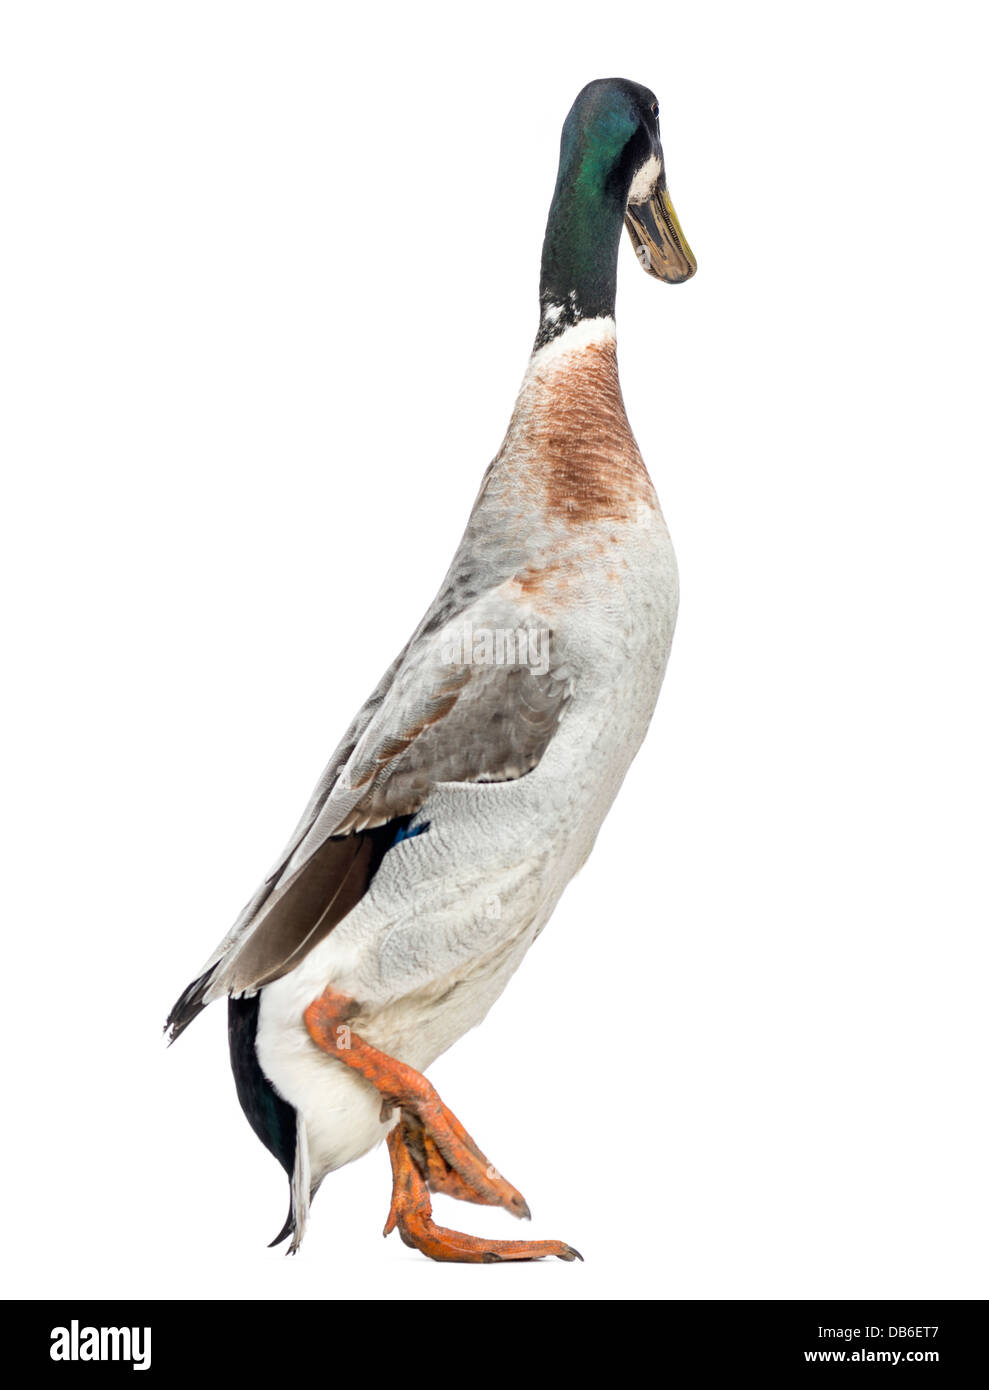 Male Indian Runner Duck, Anas platyrhynchos domesticus, walking against white background - Stock Image